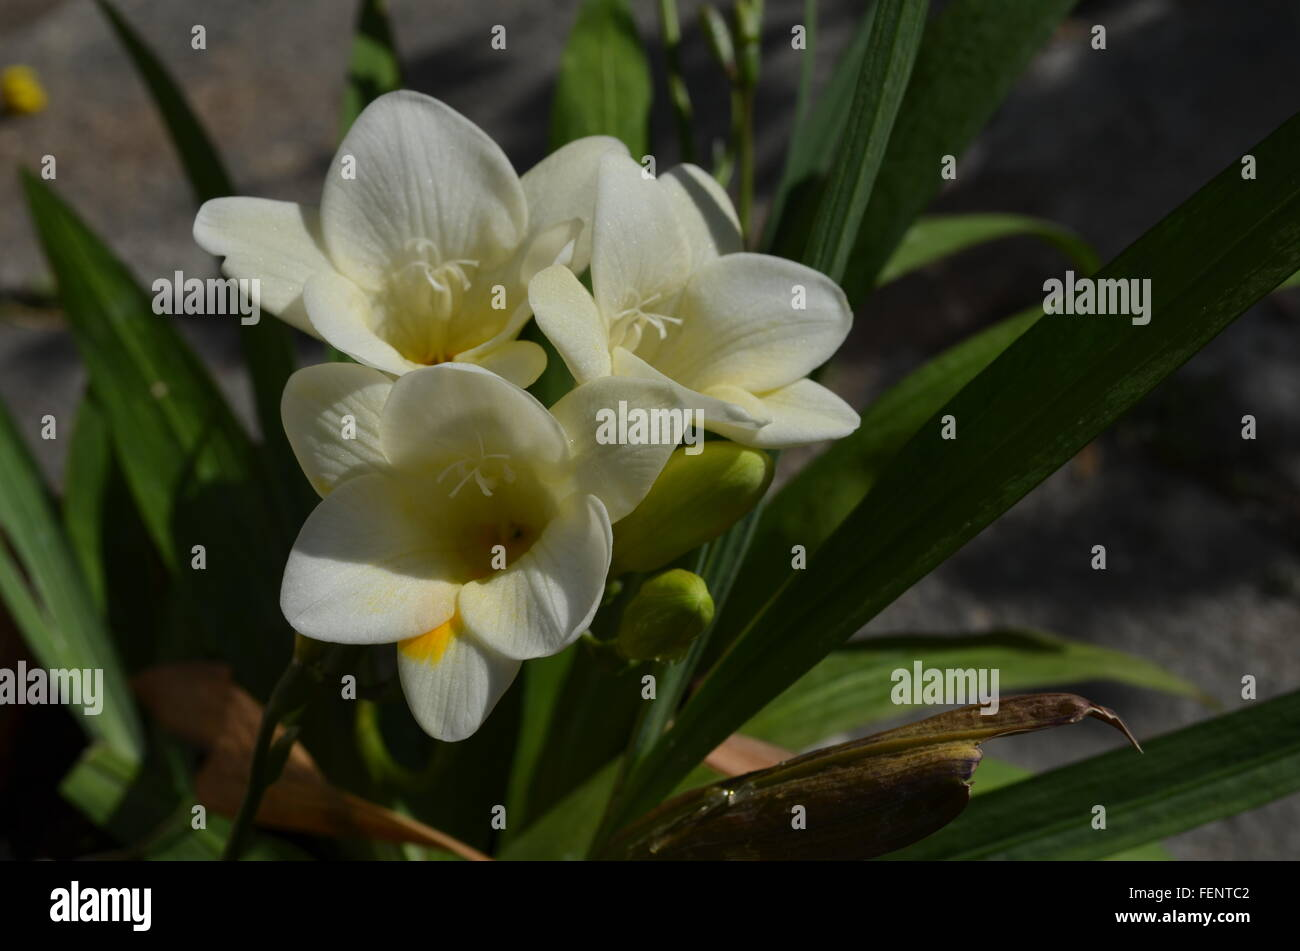 Close up of white freesia flowers in pot stock photo 95137170 alamy close up of white freesia flowers in pot mightylinksfo